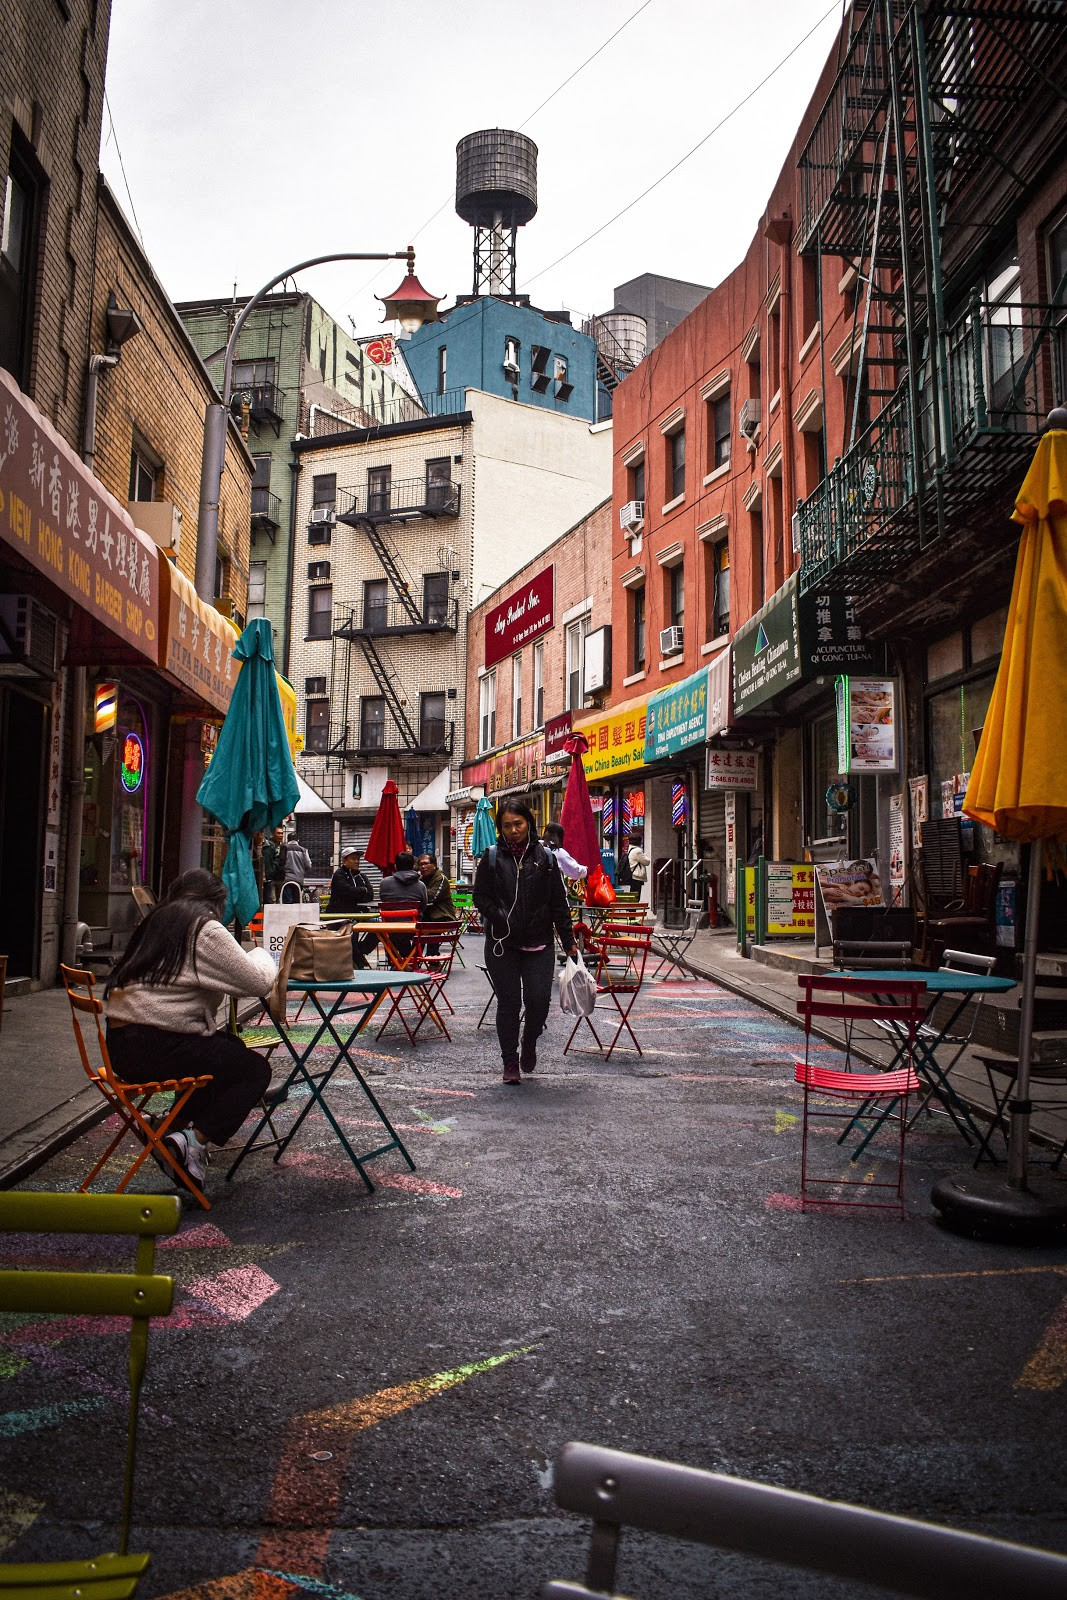 Image of street with tables, chairs, and pedestrians